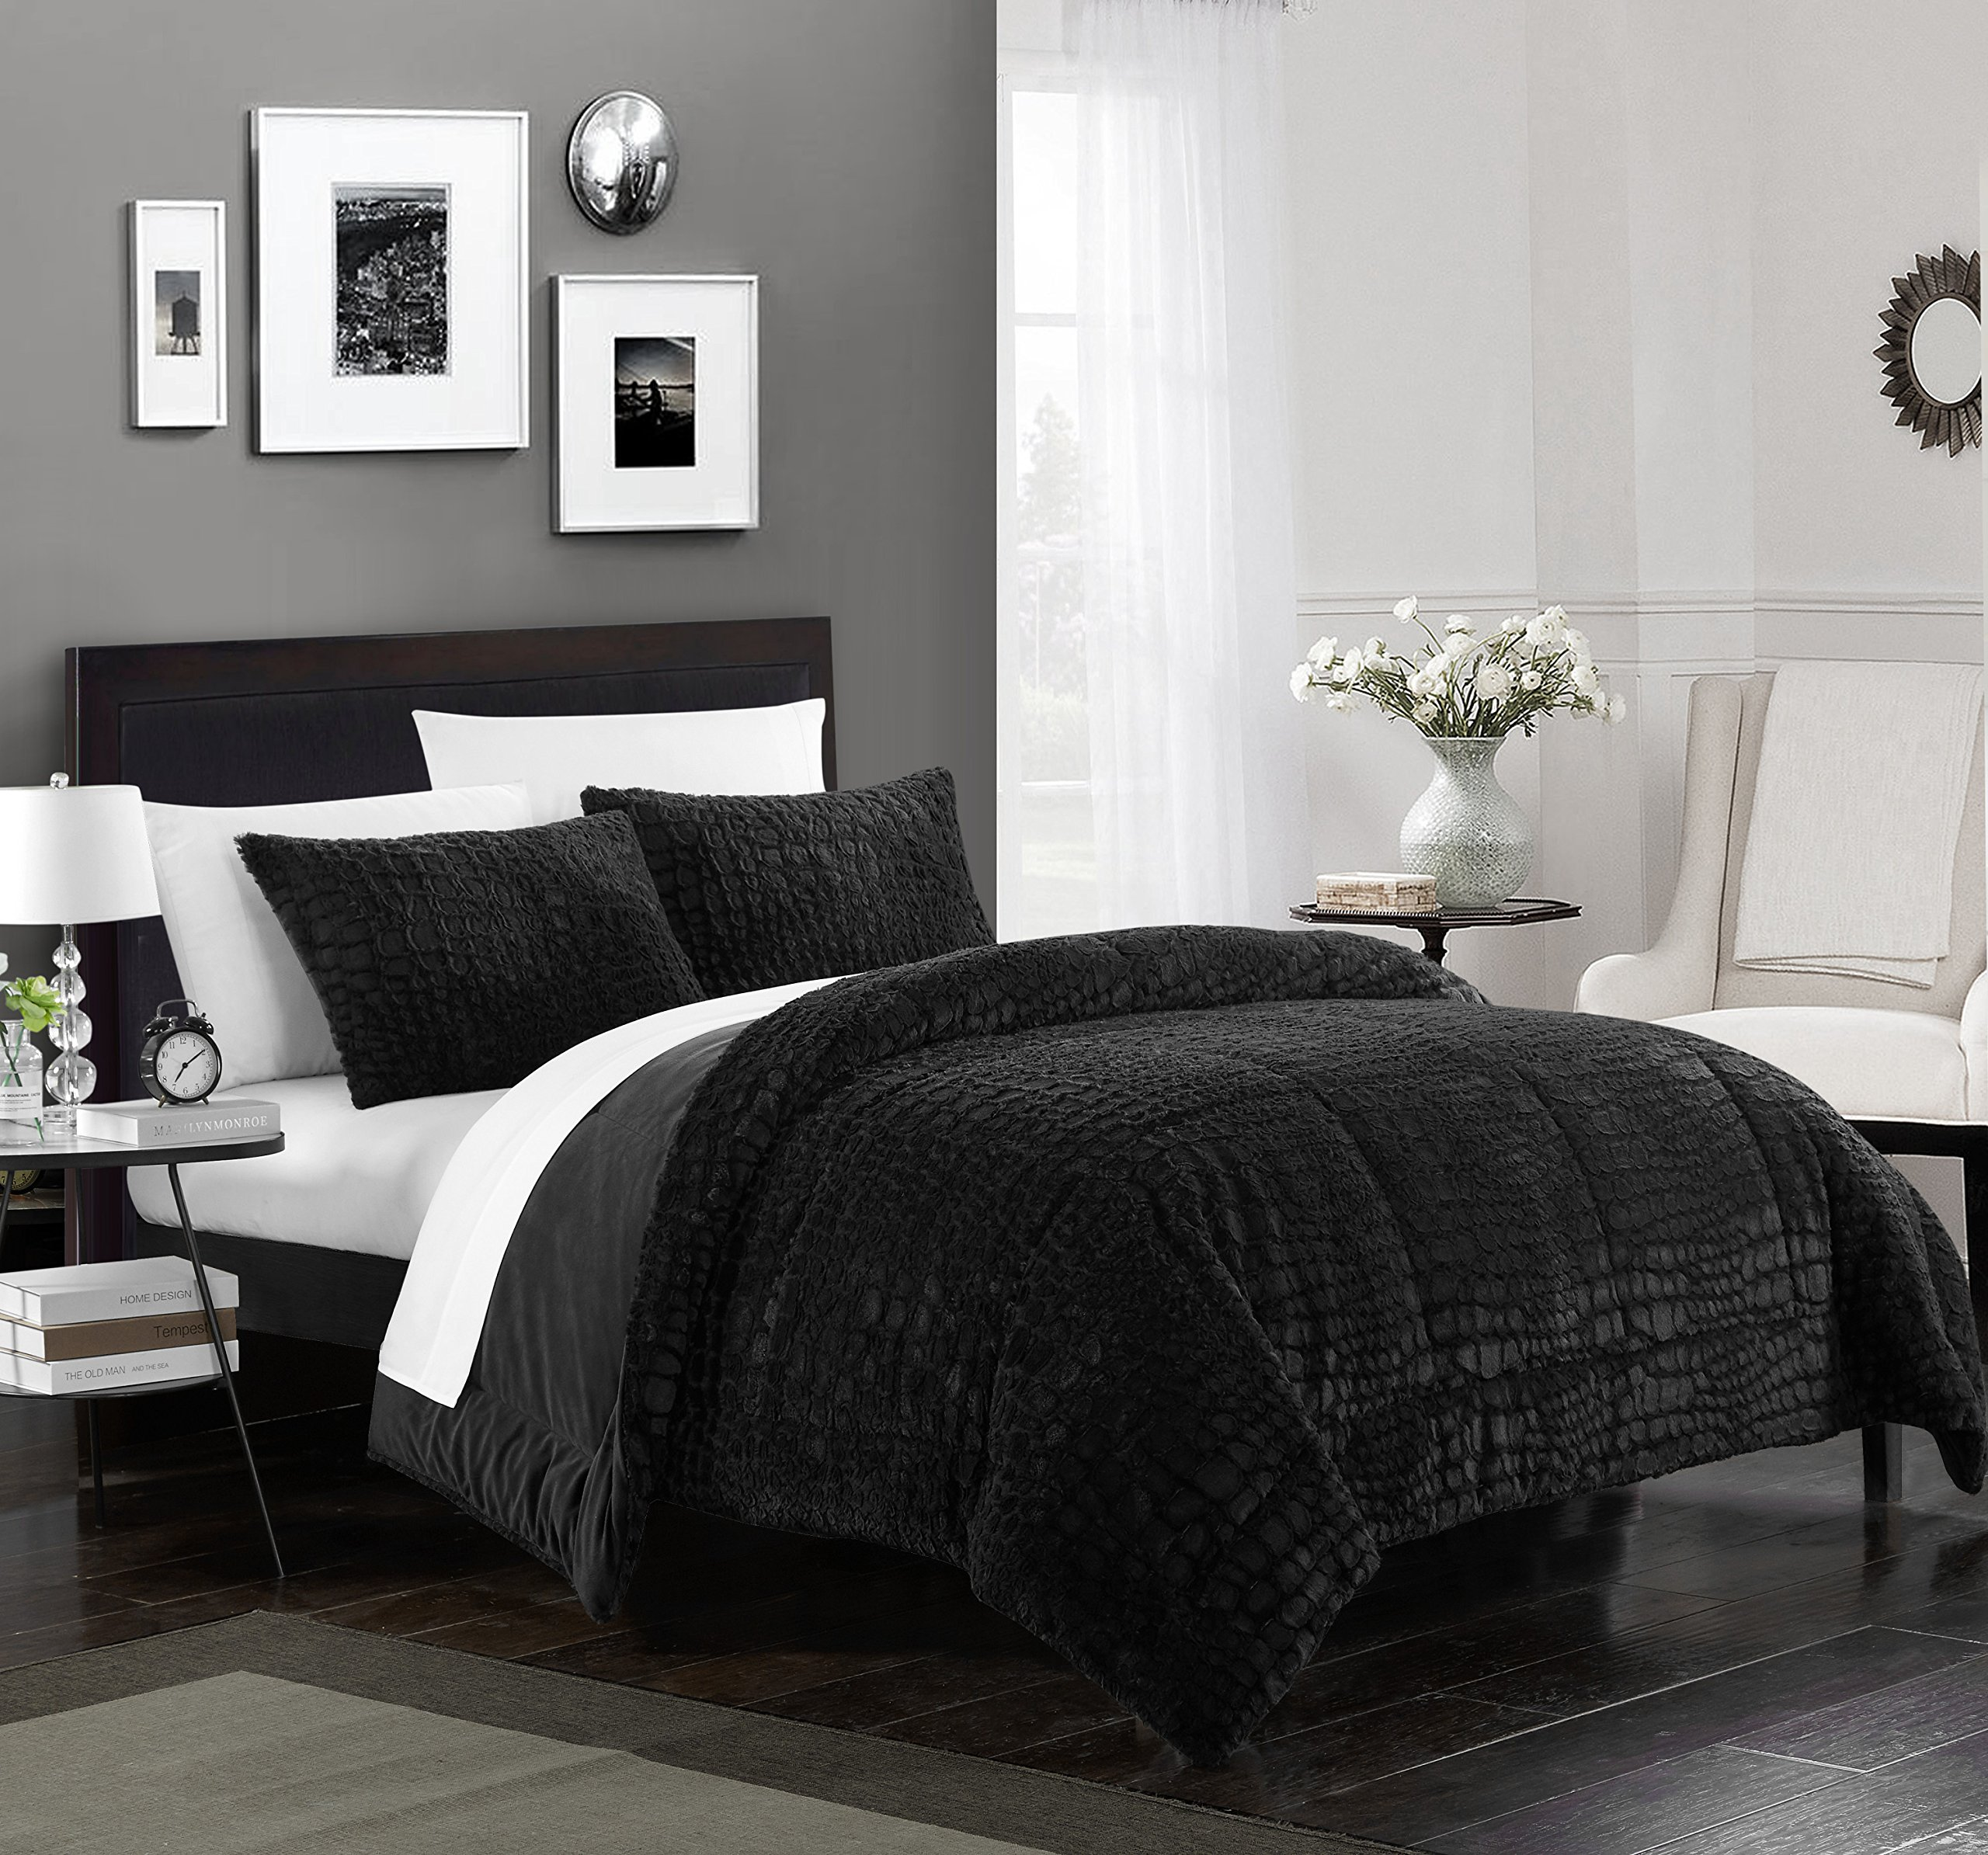 Chic Home Cayman 3 Piece Comforter Set Faux Fur Micro Mink Cayman Skin Bedding, Queen Black